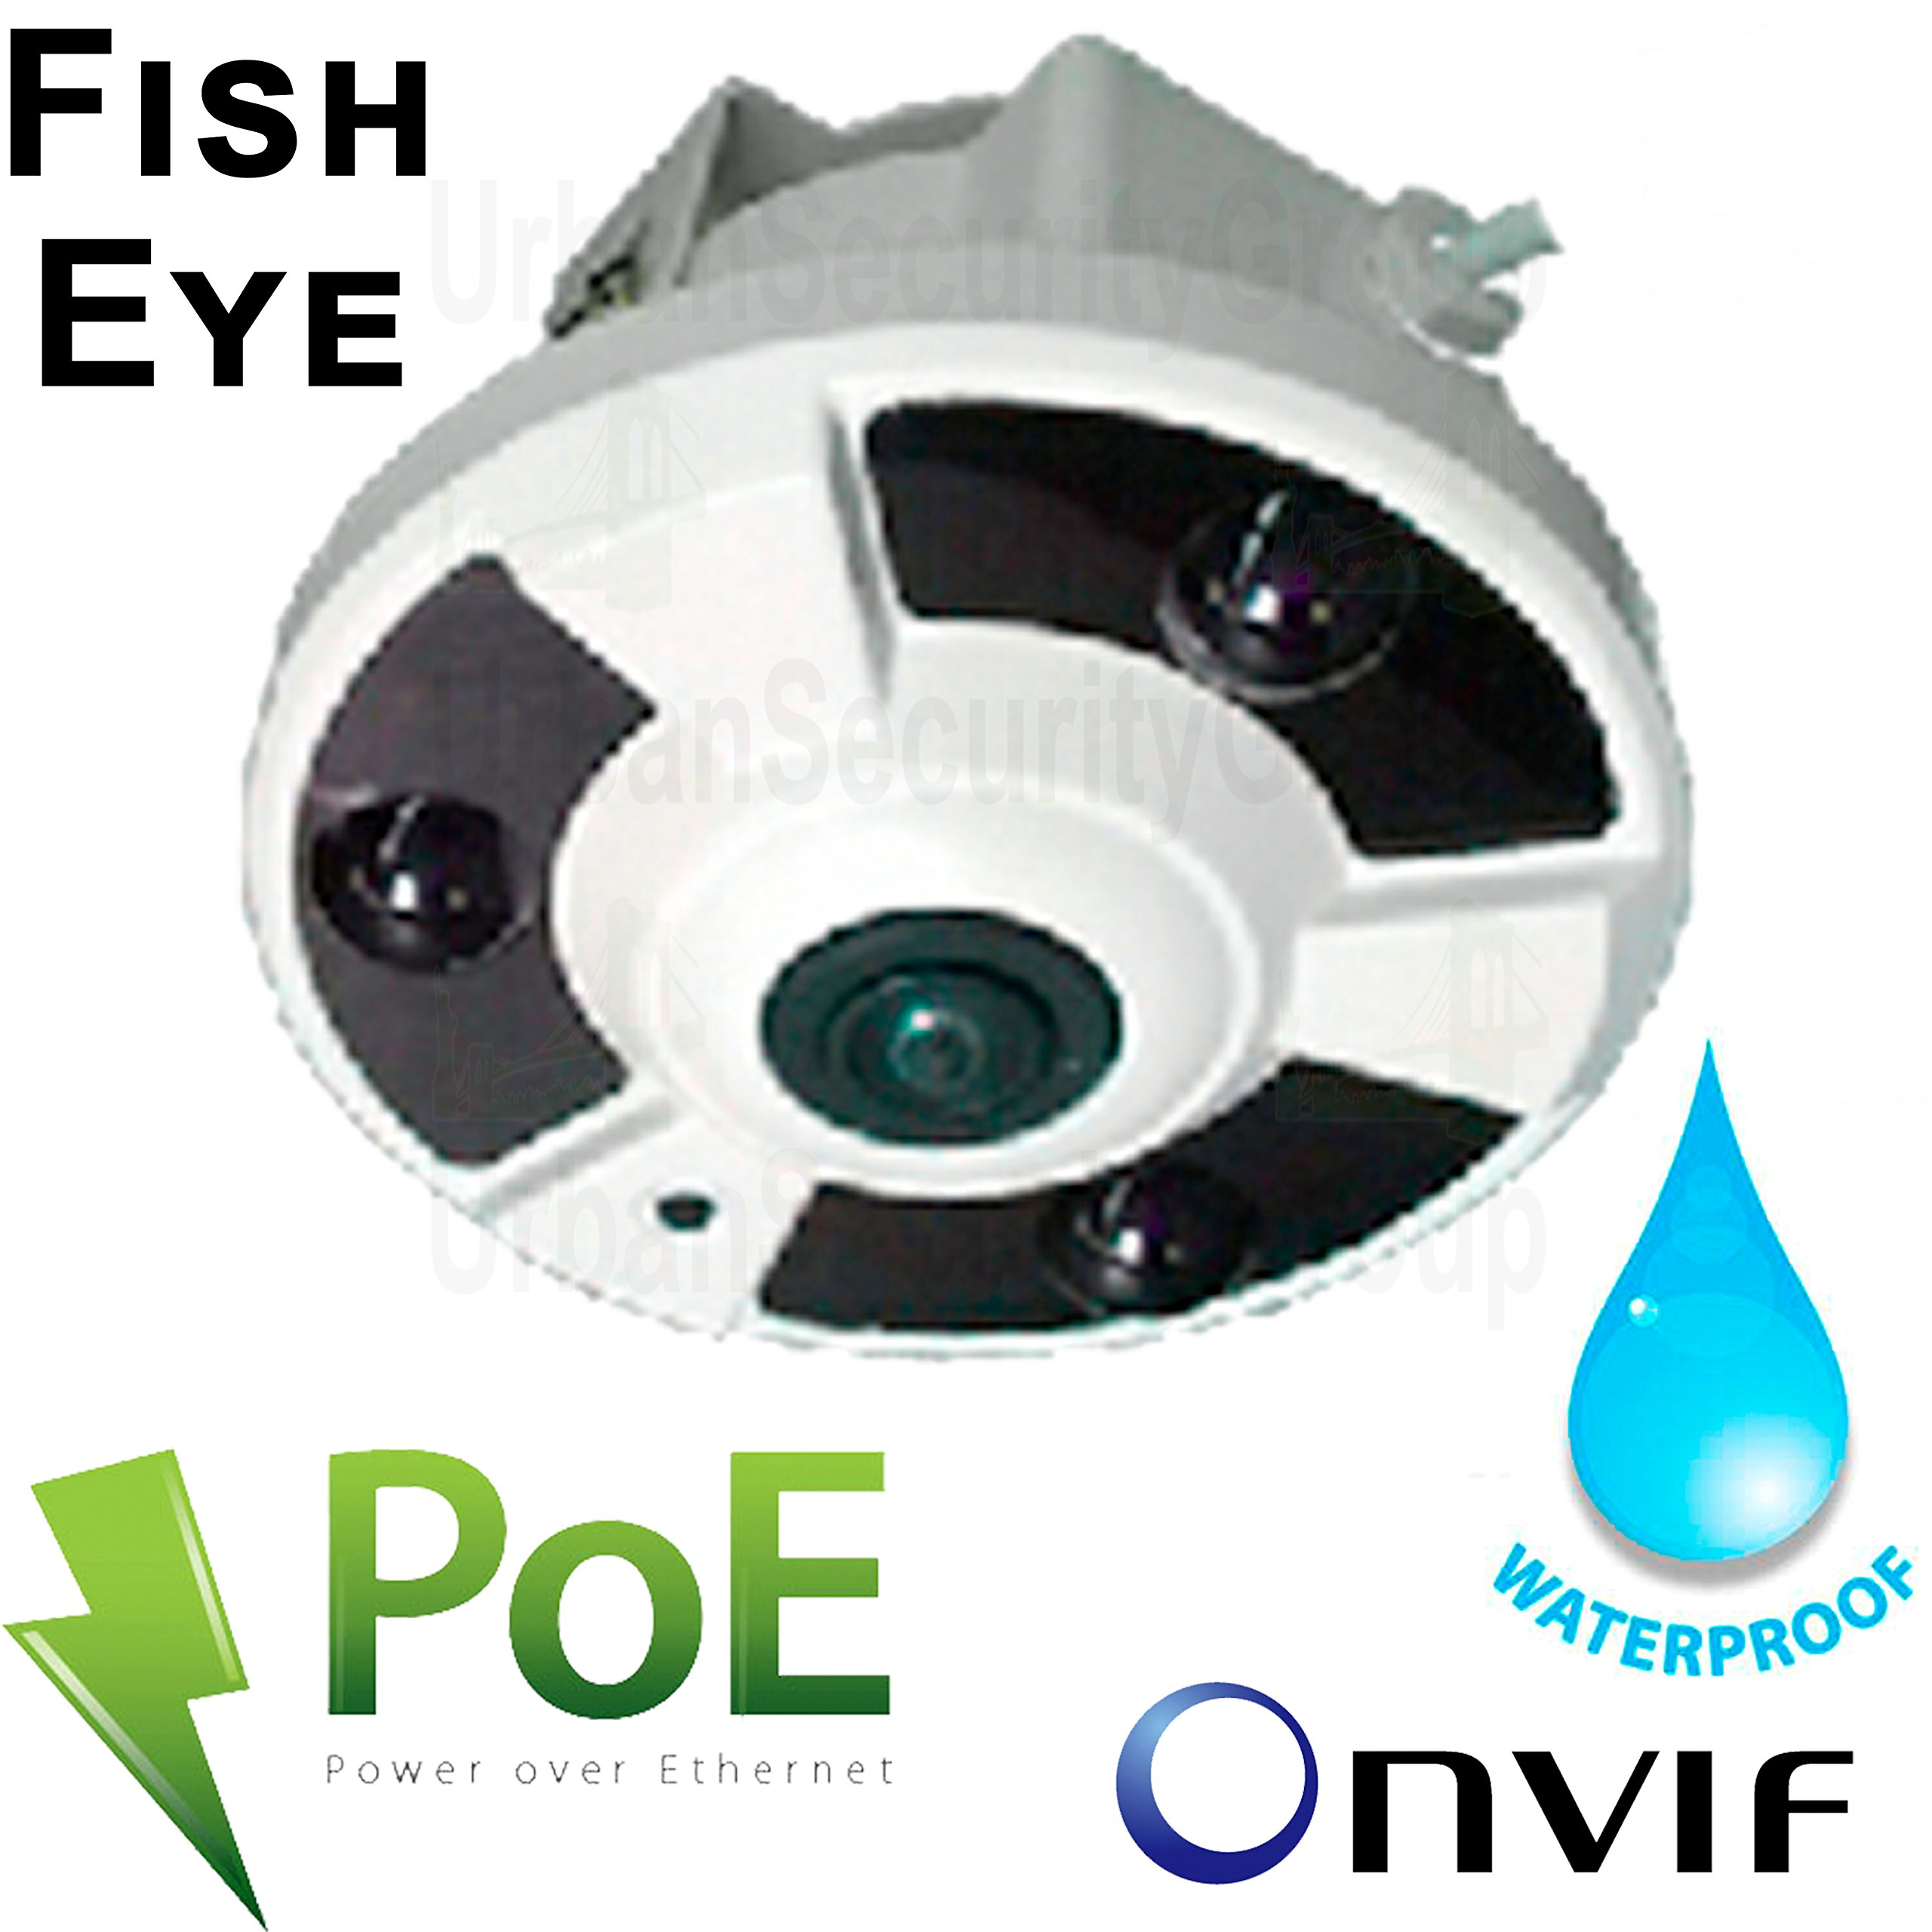 USG Business Grade 4MP 2592x1520 Fish-Eye Ultra HD IP Network Dome Security Camera : 1.7mm Ultra Wide Angle Lens : Power Over Ethernet : ONVIF : Outdoor Indoor Low Profile Dome : 3x IR LEDs